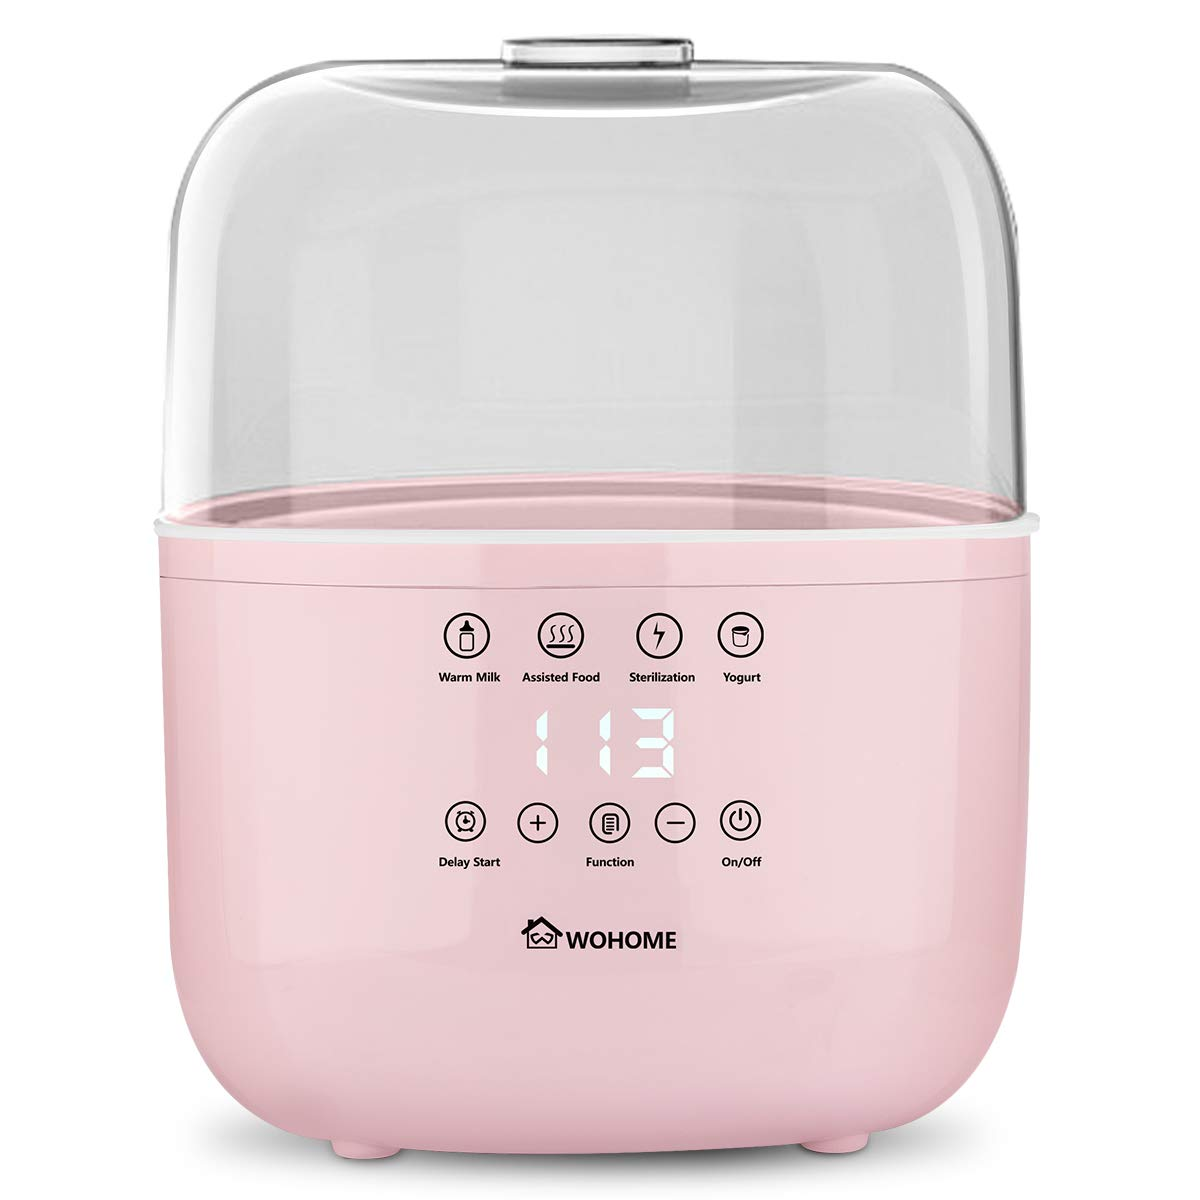 Bottle Warmer Sterilizer, WOHOME Baby Bottle Warmer Quickly Heating Warm Milk Assisted Food with LED Display and Delay Start Function, Pink